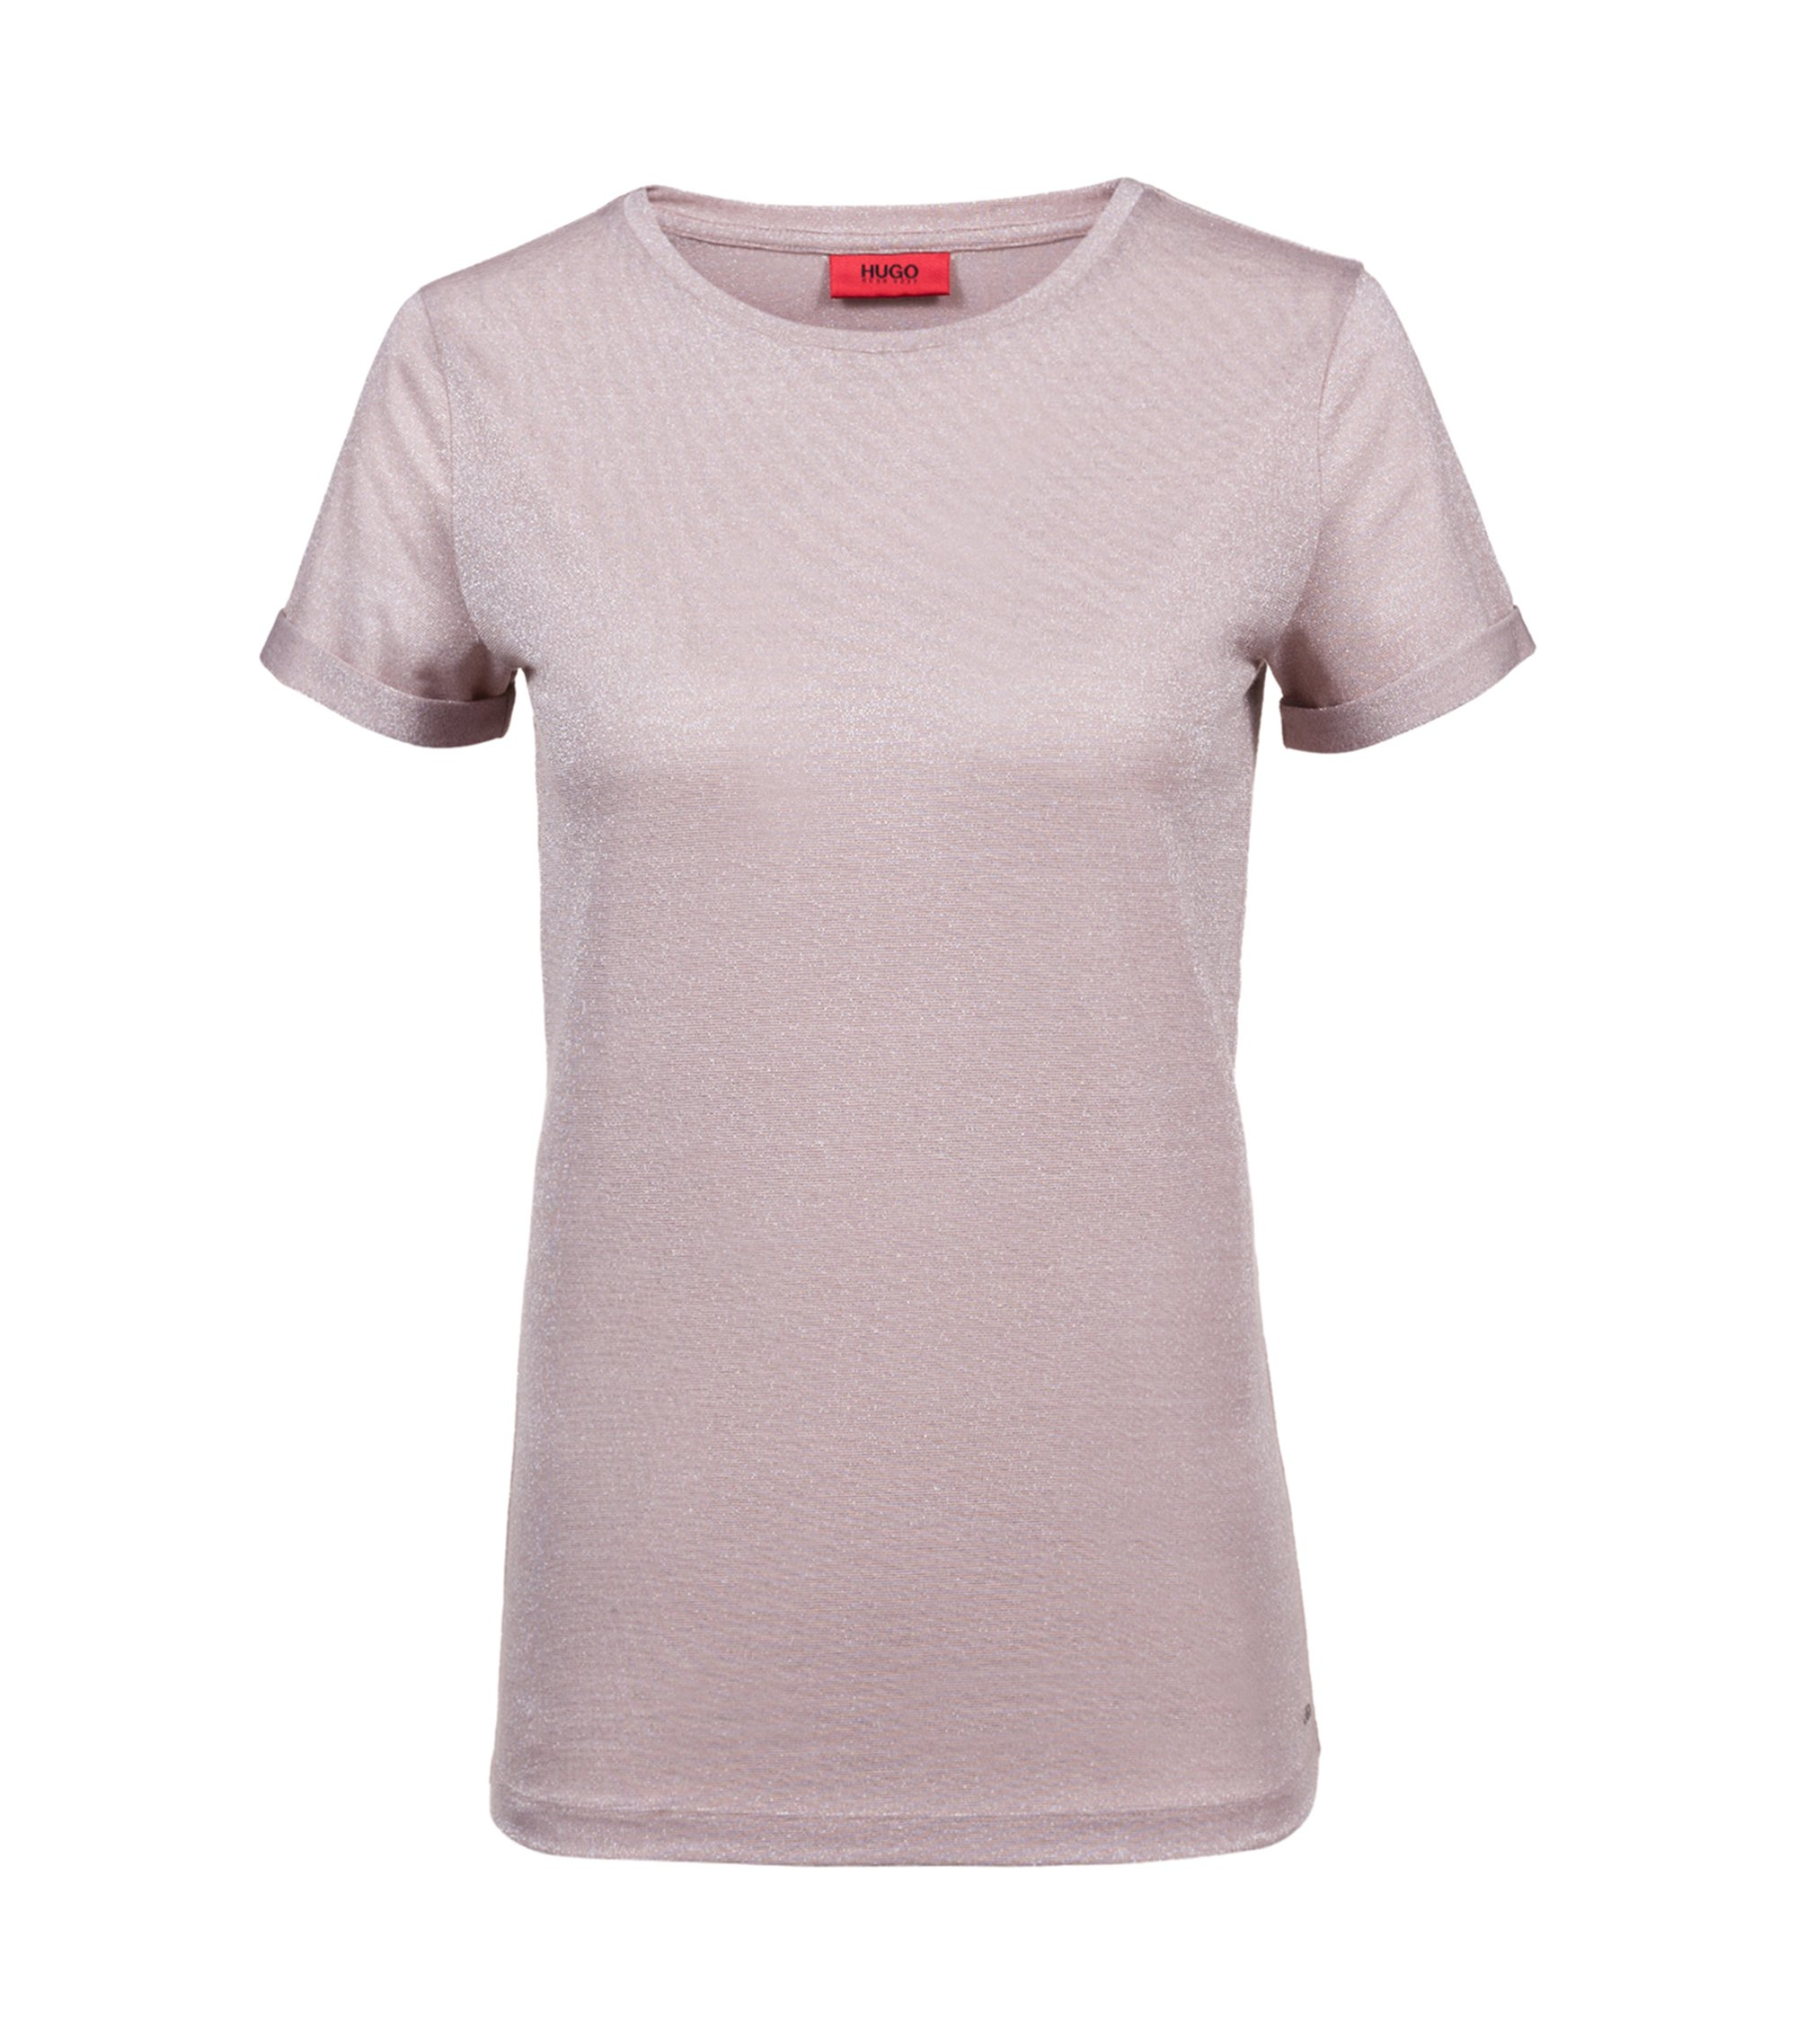 T-shirt Slim Fit en jersey stretch brillant, Rose clair